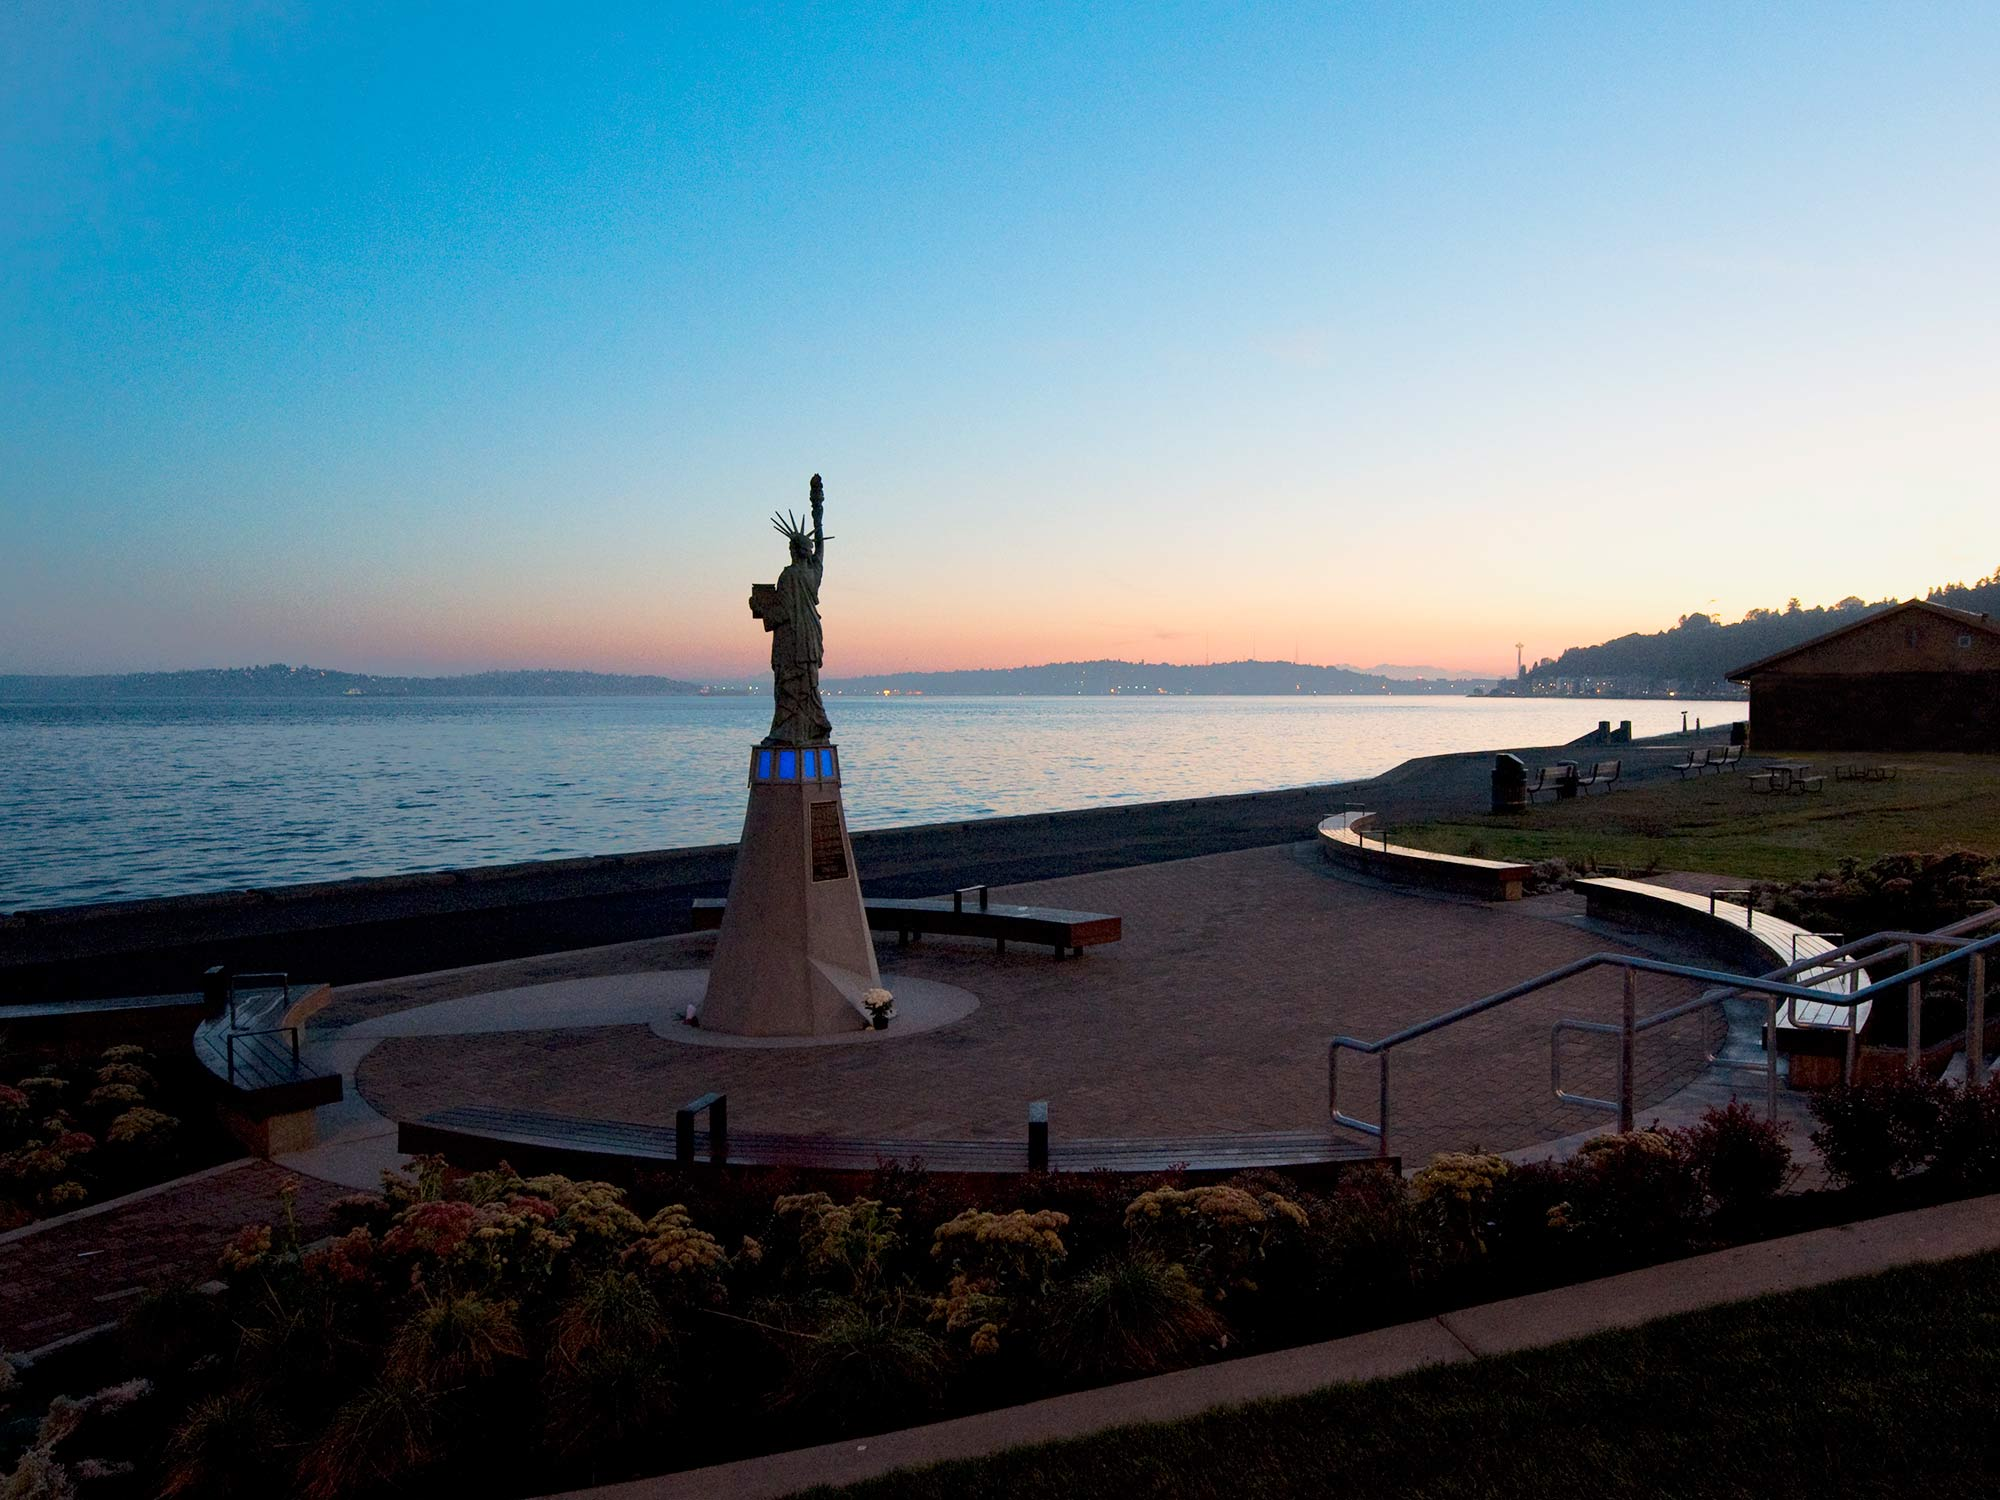 A public art restoration to renew a local icon and gathering place. The project draws its inspiration from the maritime context, community comment, and a symbolic radiance of the Statue's ideals.